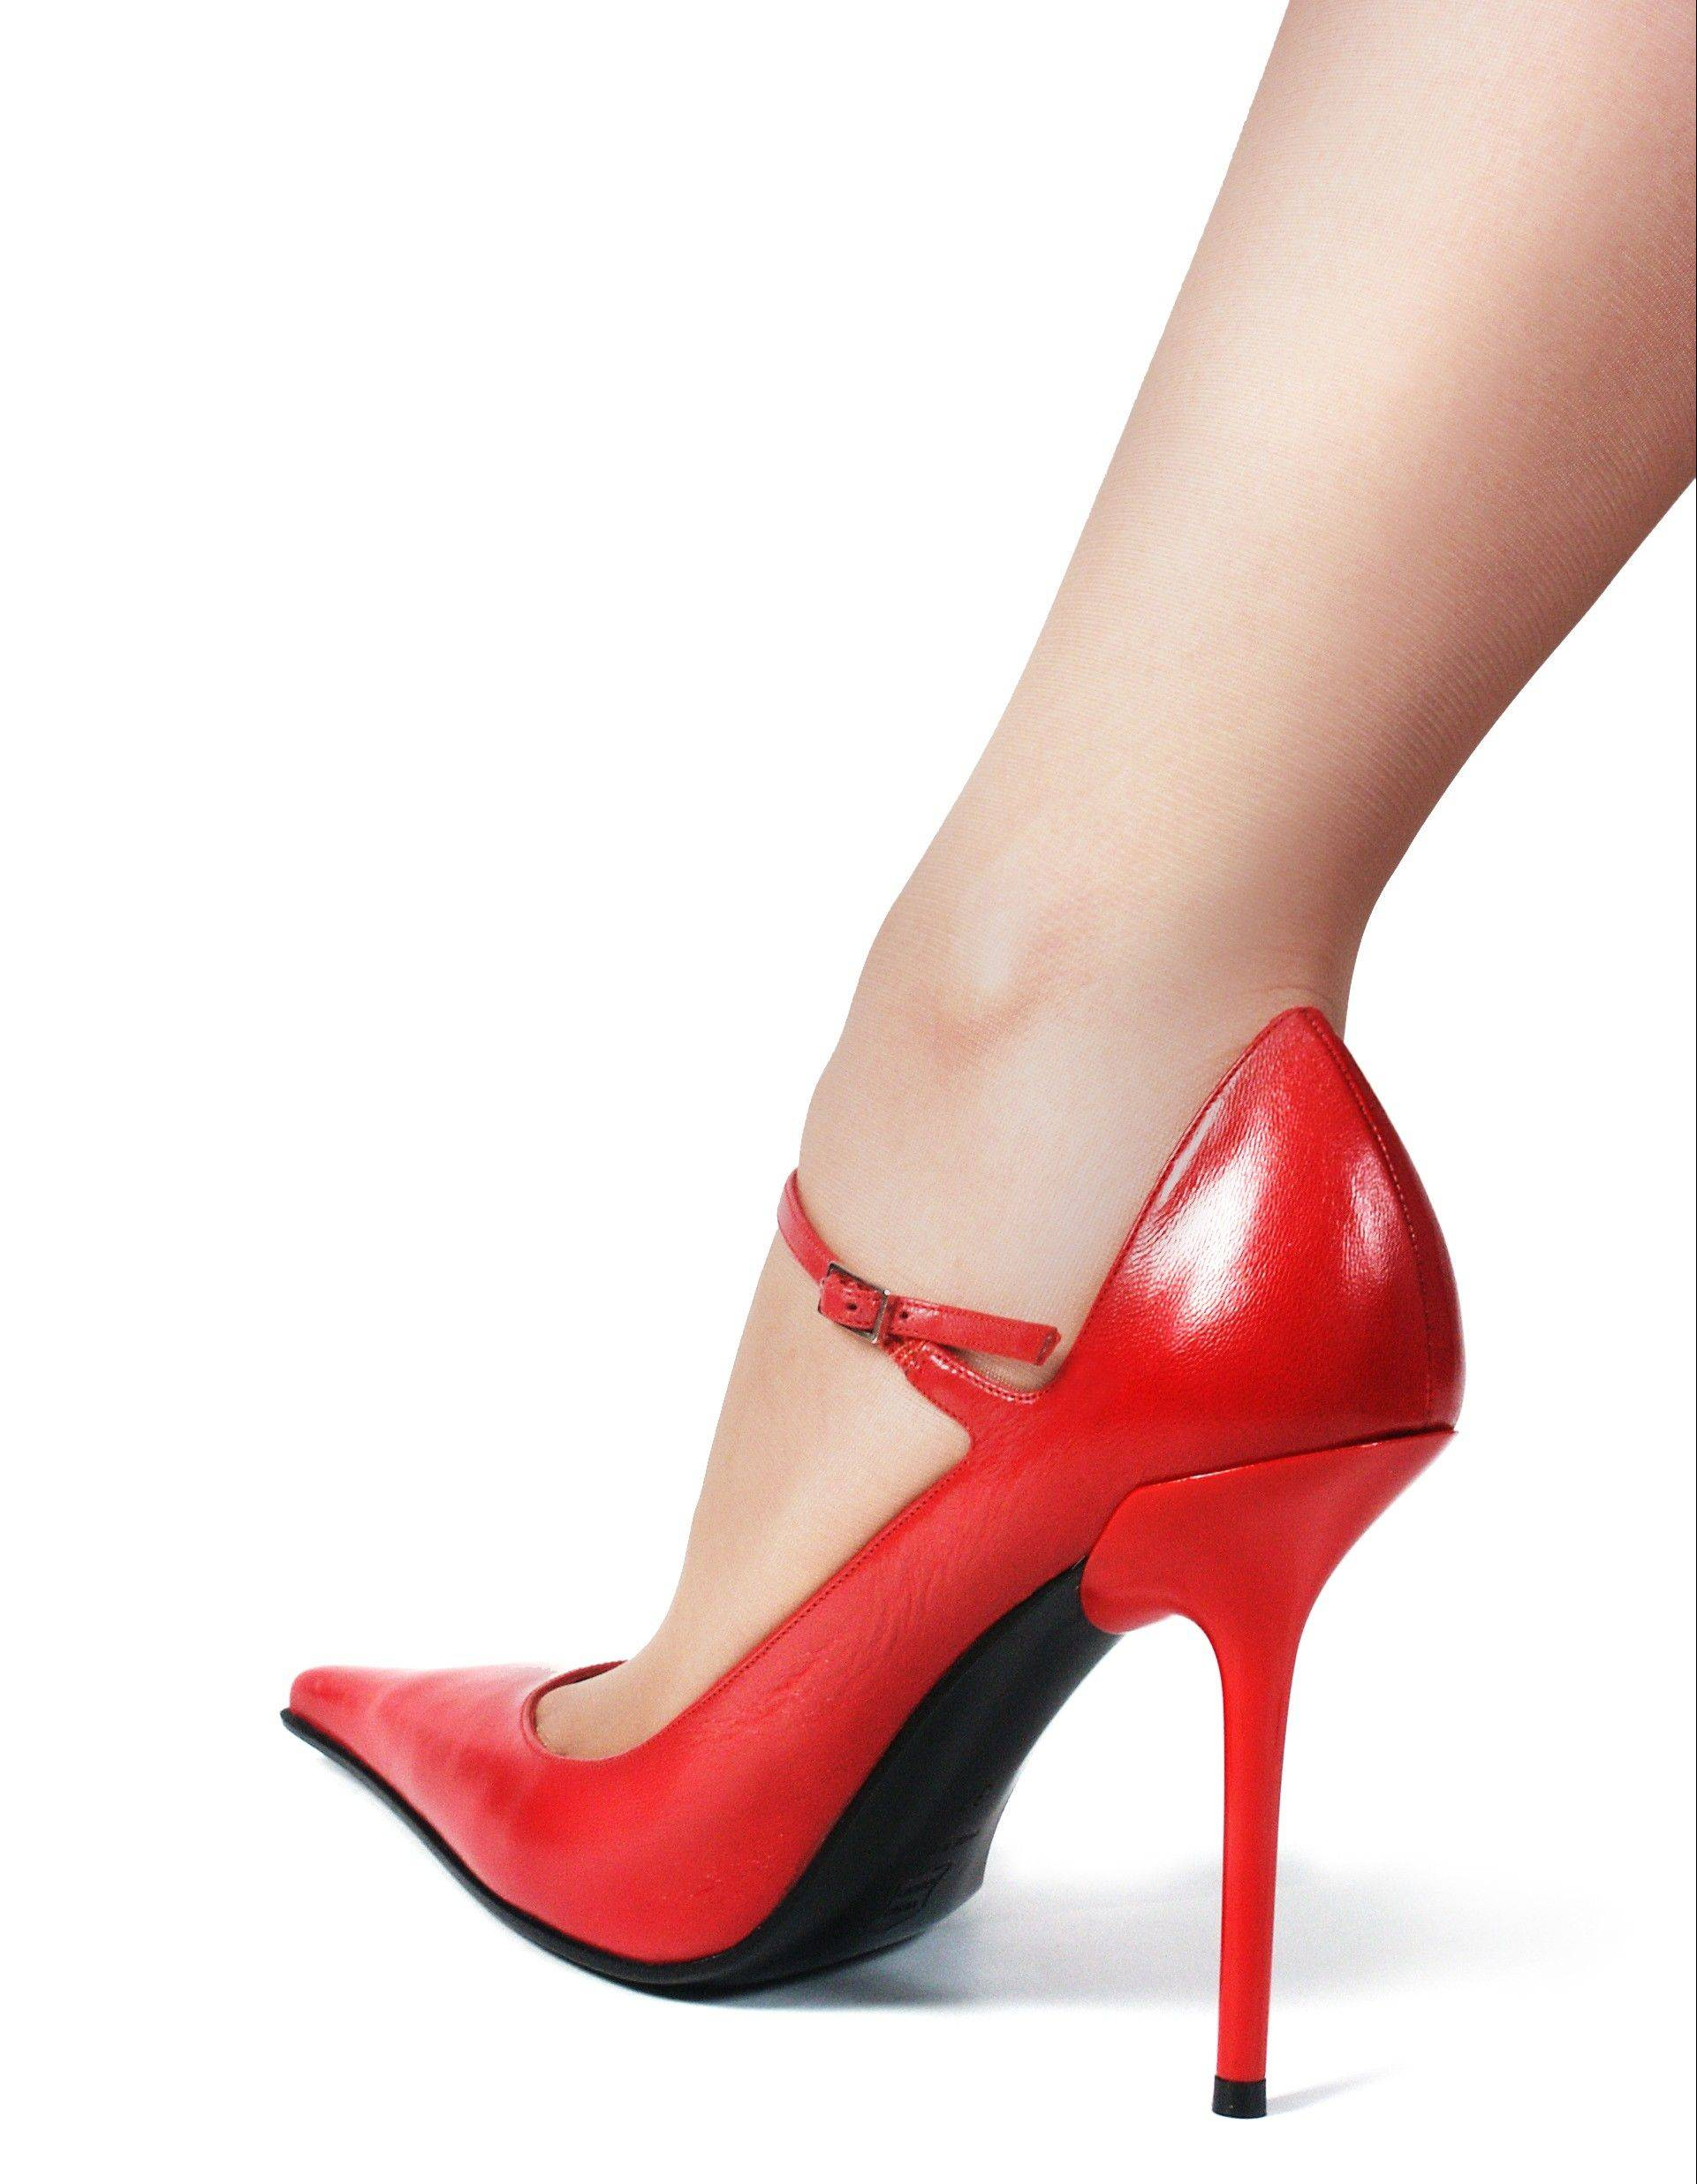 Many foot problems can be attributed to regularly wearing high heels, podiatrists warn.